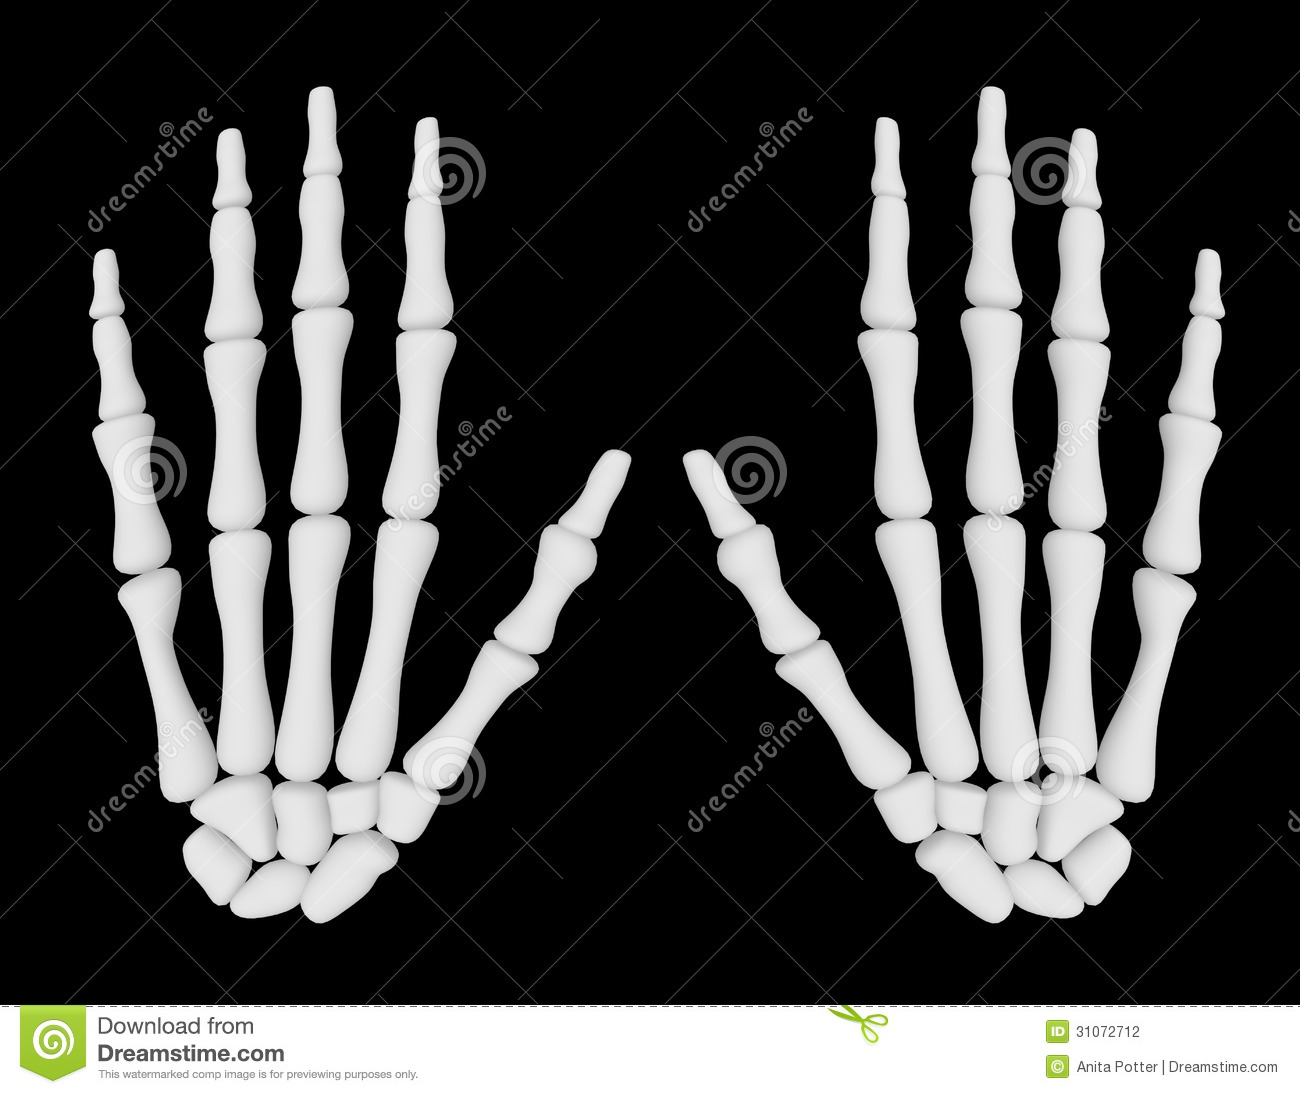 Materials furthermore Stock Photography D Render Pair Skeleton Hands Isolated Black Image31072712 additionally Ornamental Interior Decoration Logo Template additionally Elegantly English Beautiful River Side House Has Fantastic Views And English Styling besides Luxury Interior Design Dubai. on english classic interior design